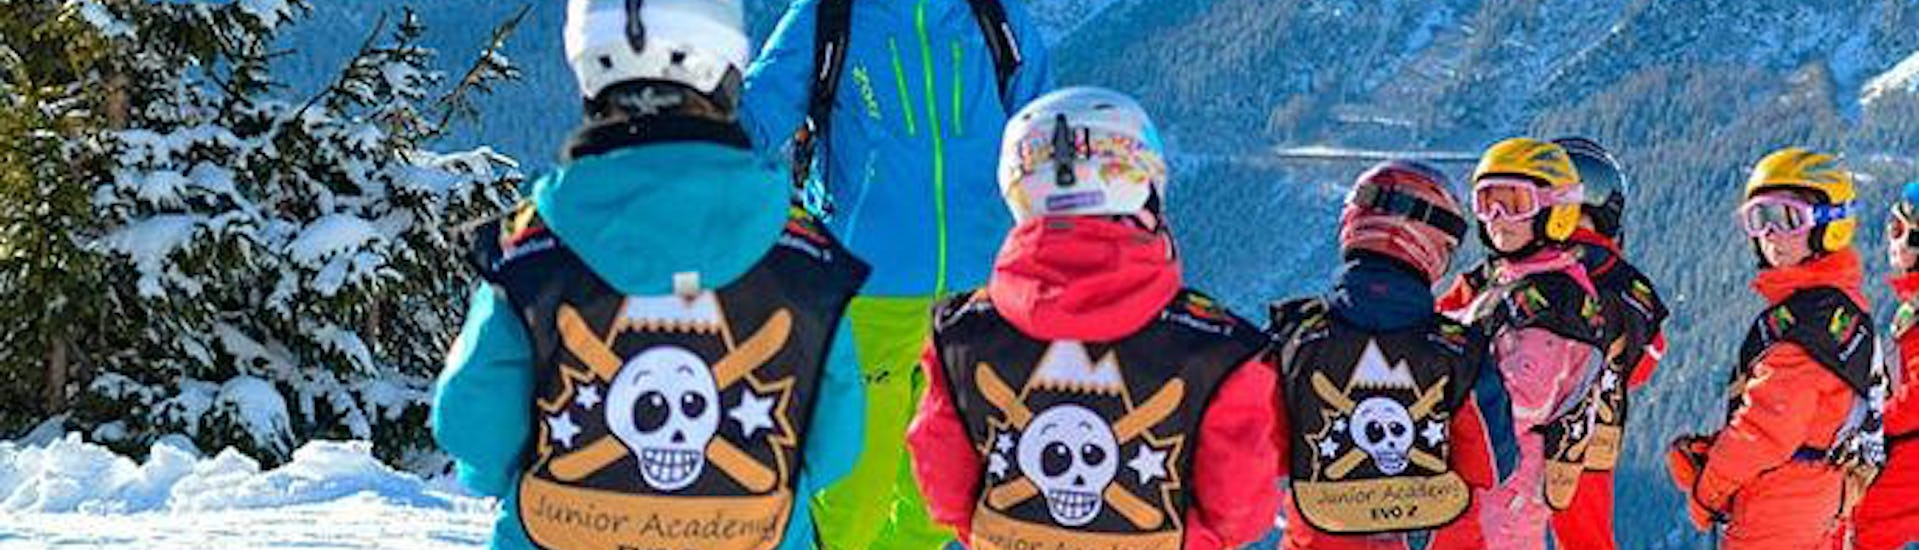 Ski Lessons for Kids (5-14 years) Junior Academy - Advanced